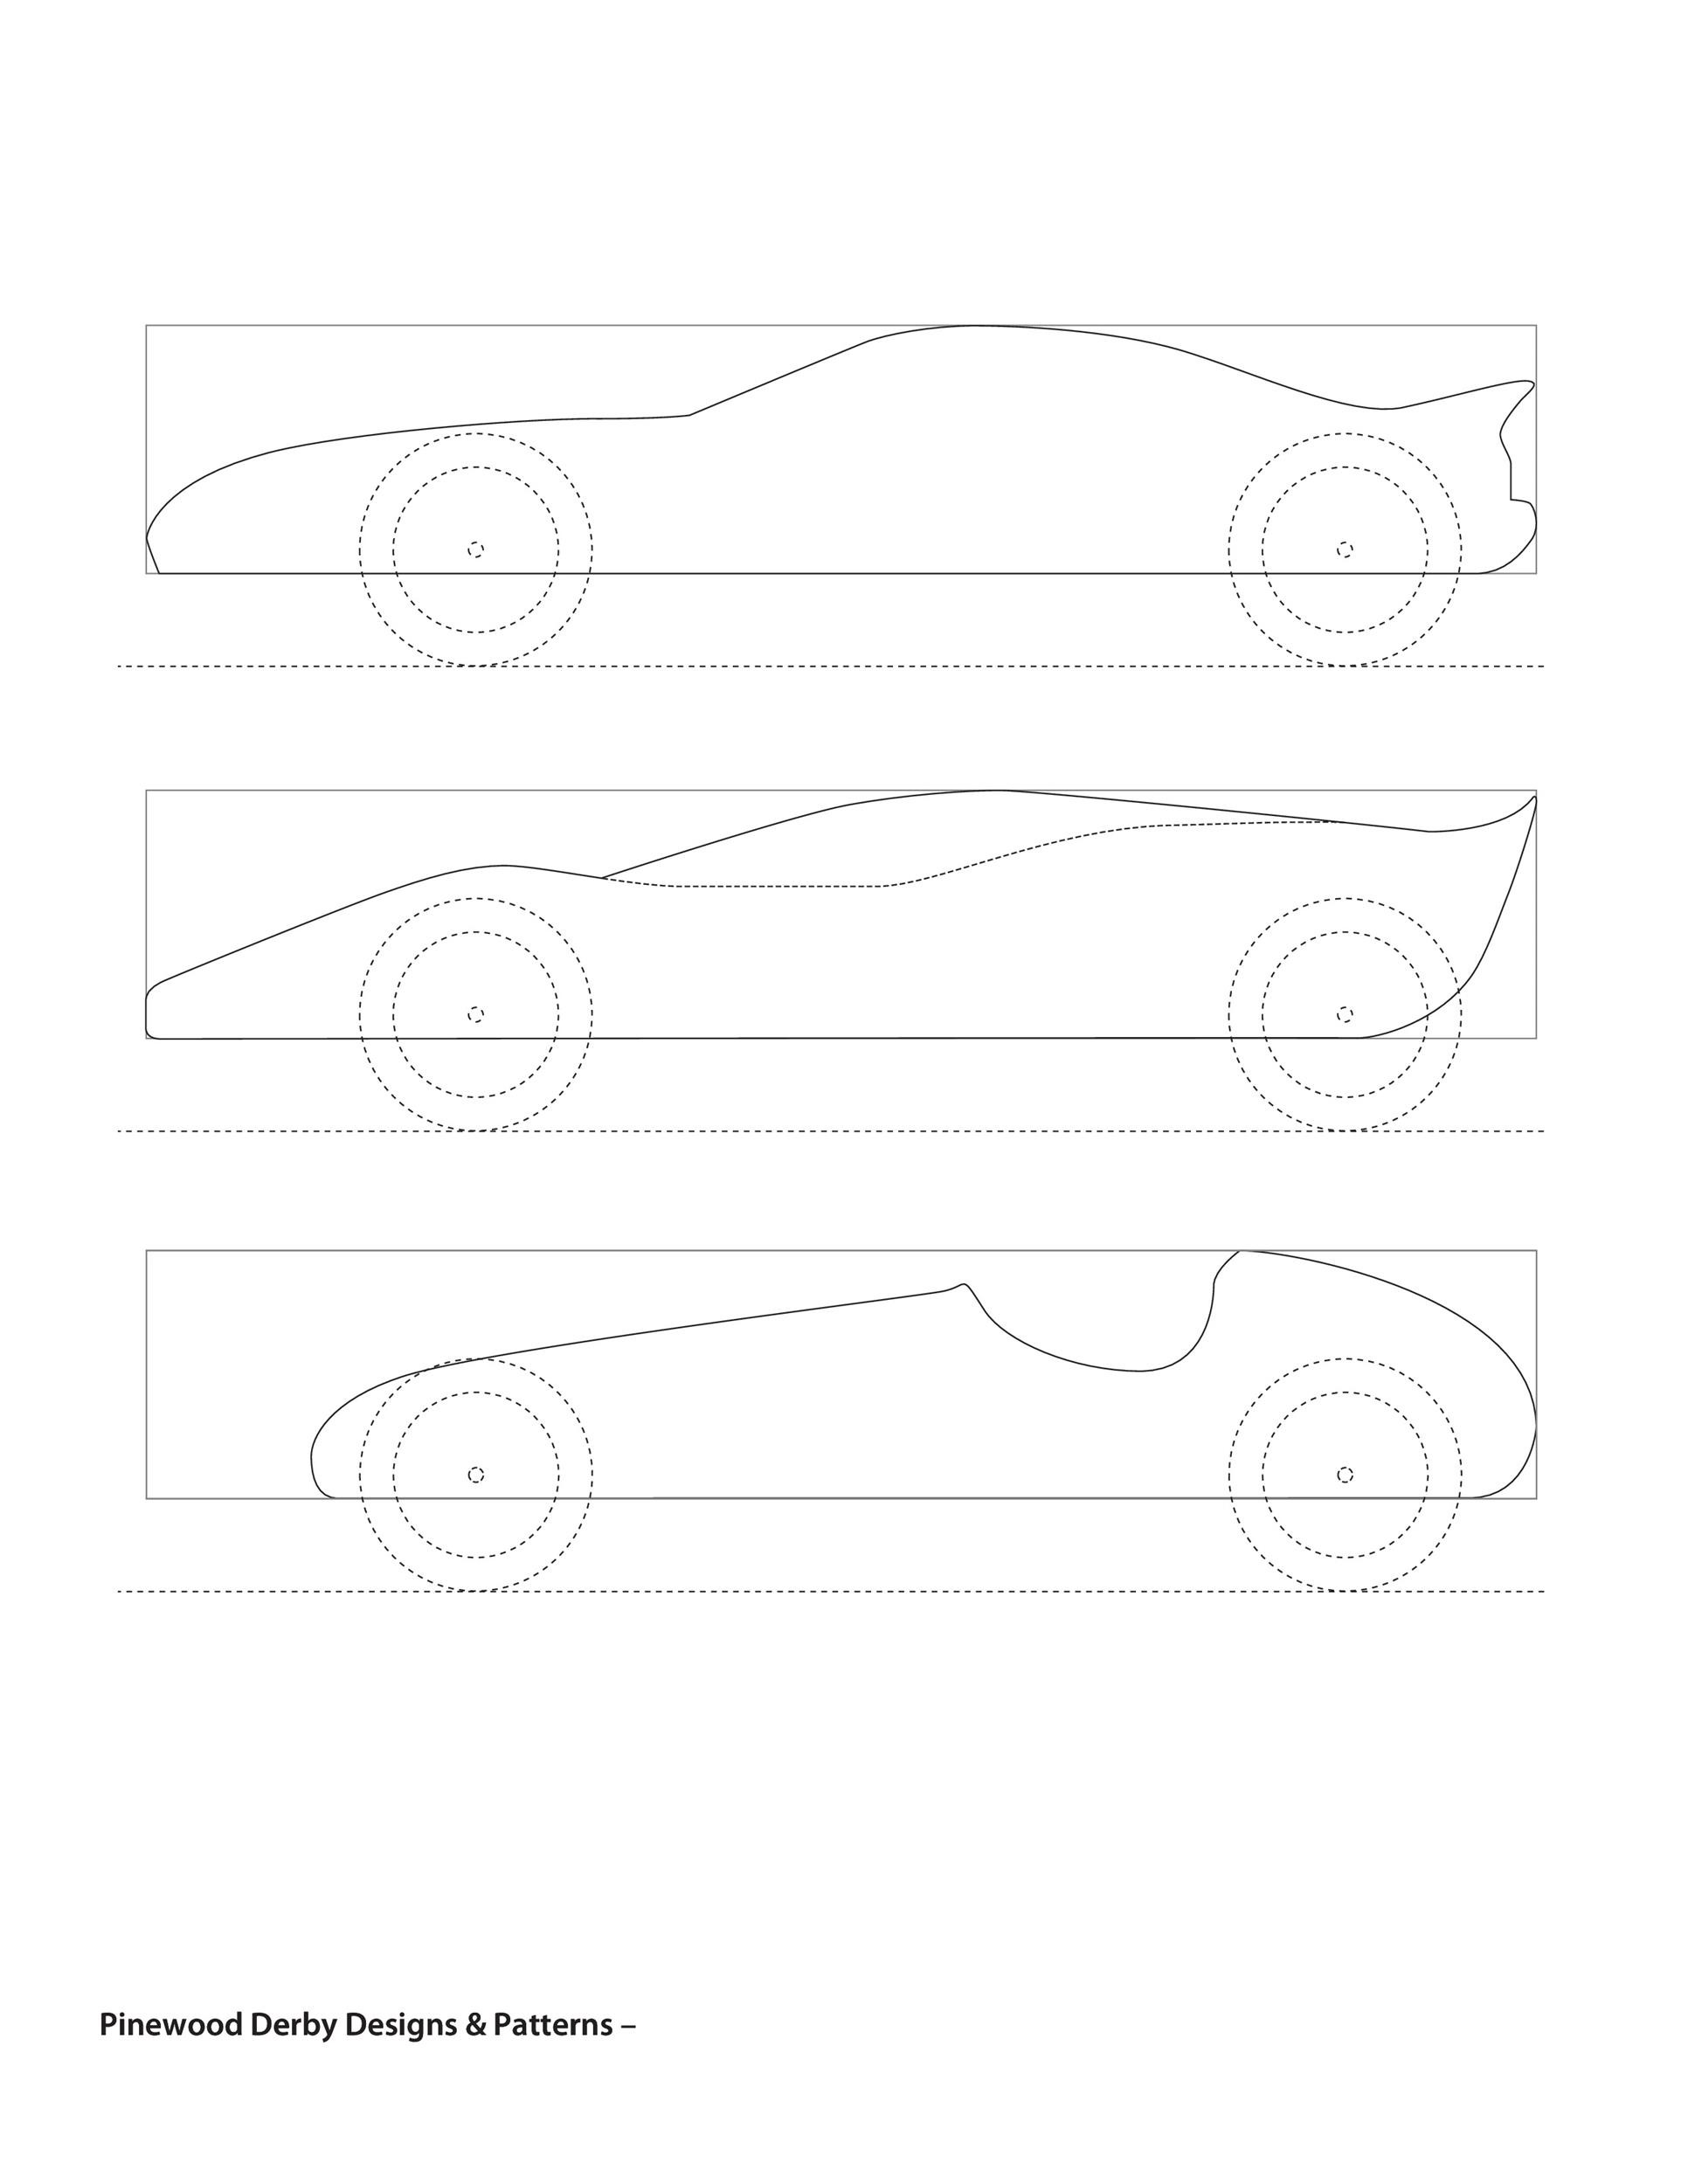 image relating to Printable Pinewood Derby Car Templates called 39 Amazing Pinewood Derby Motor vehicle Options Templates ᐅ